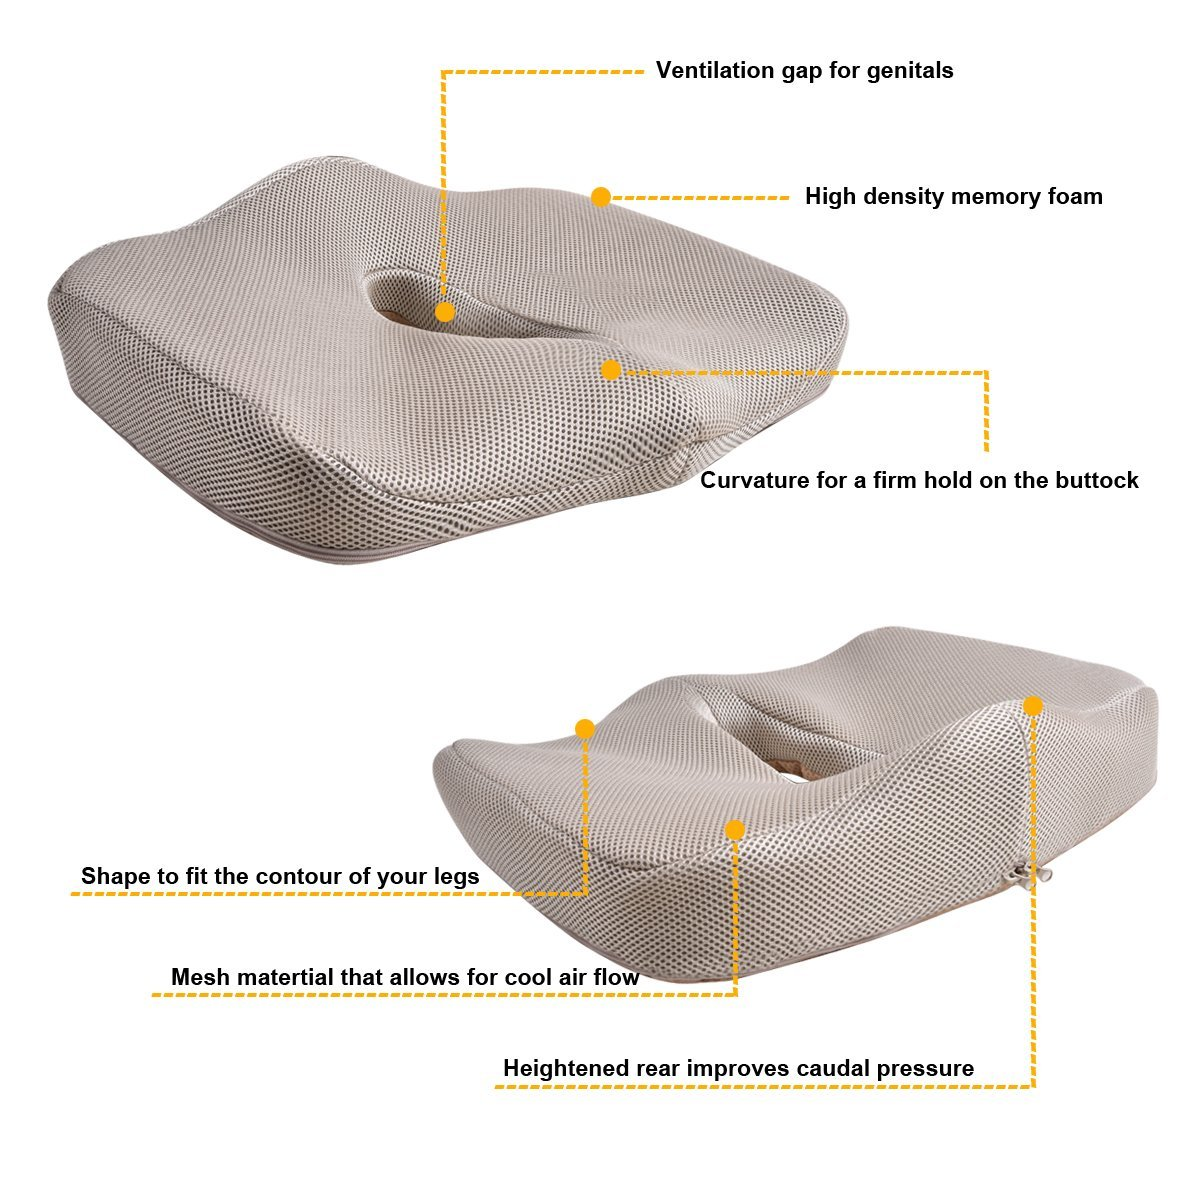 Car-pass SUPER MEMORY FOAM Seat Cushion For Office, Vehicles,Home ...